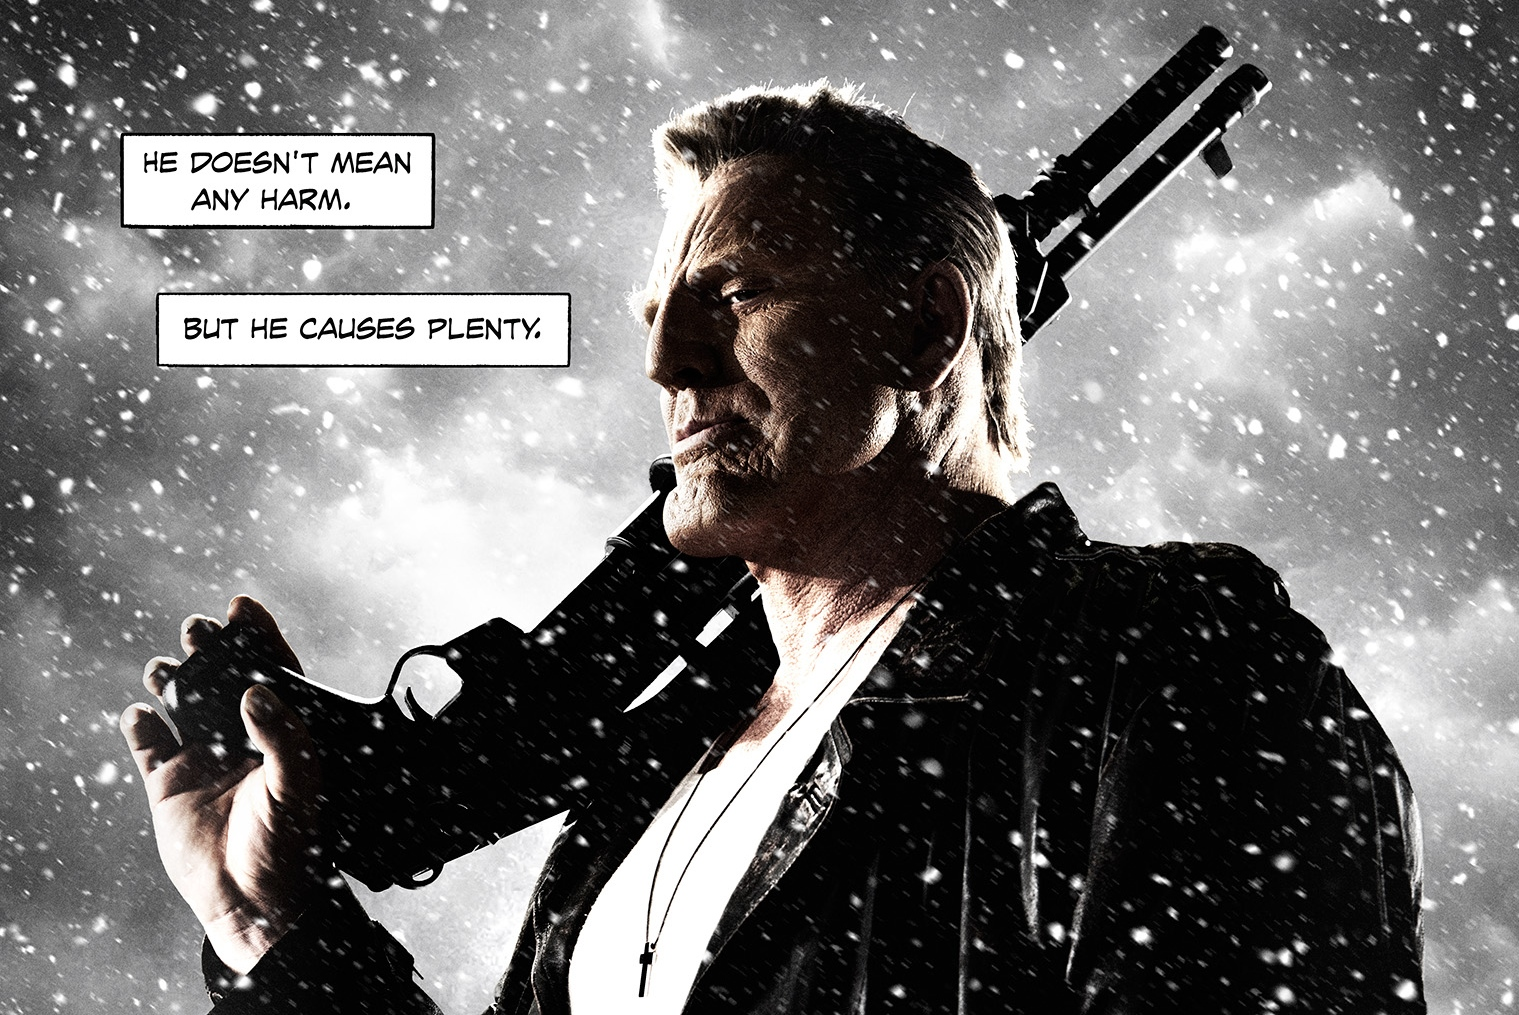 Sin City A Dame to Kill For Character Posters Revealed - /Film